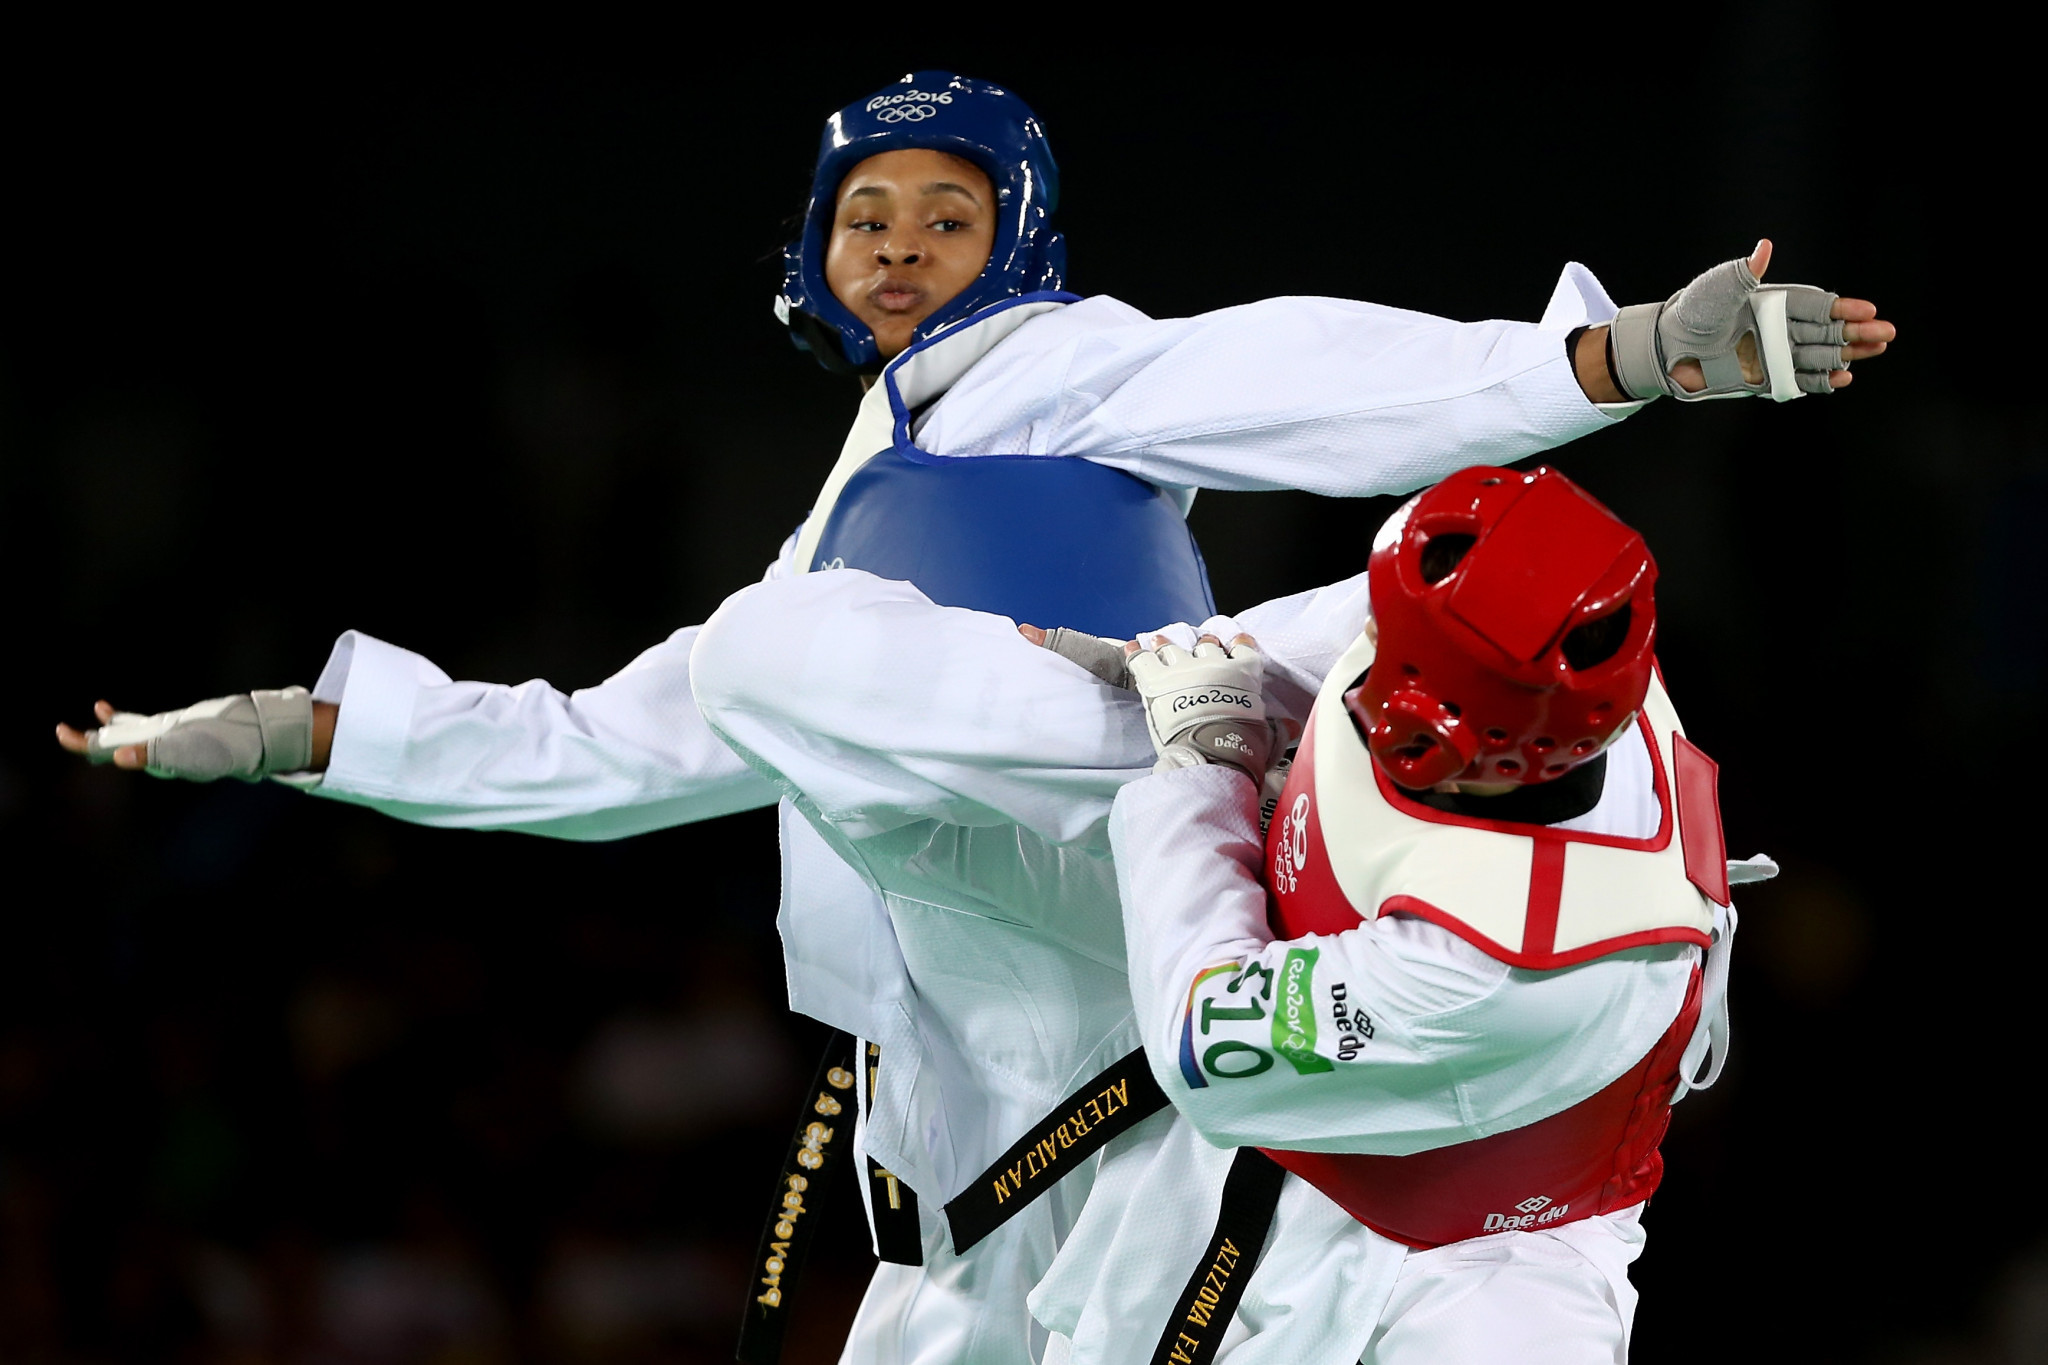 Paige McPherson of the United States will compete in the women's -67 kg class at this year's World Taekwondo Championships ©Getty Images